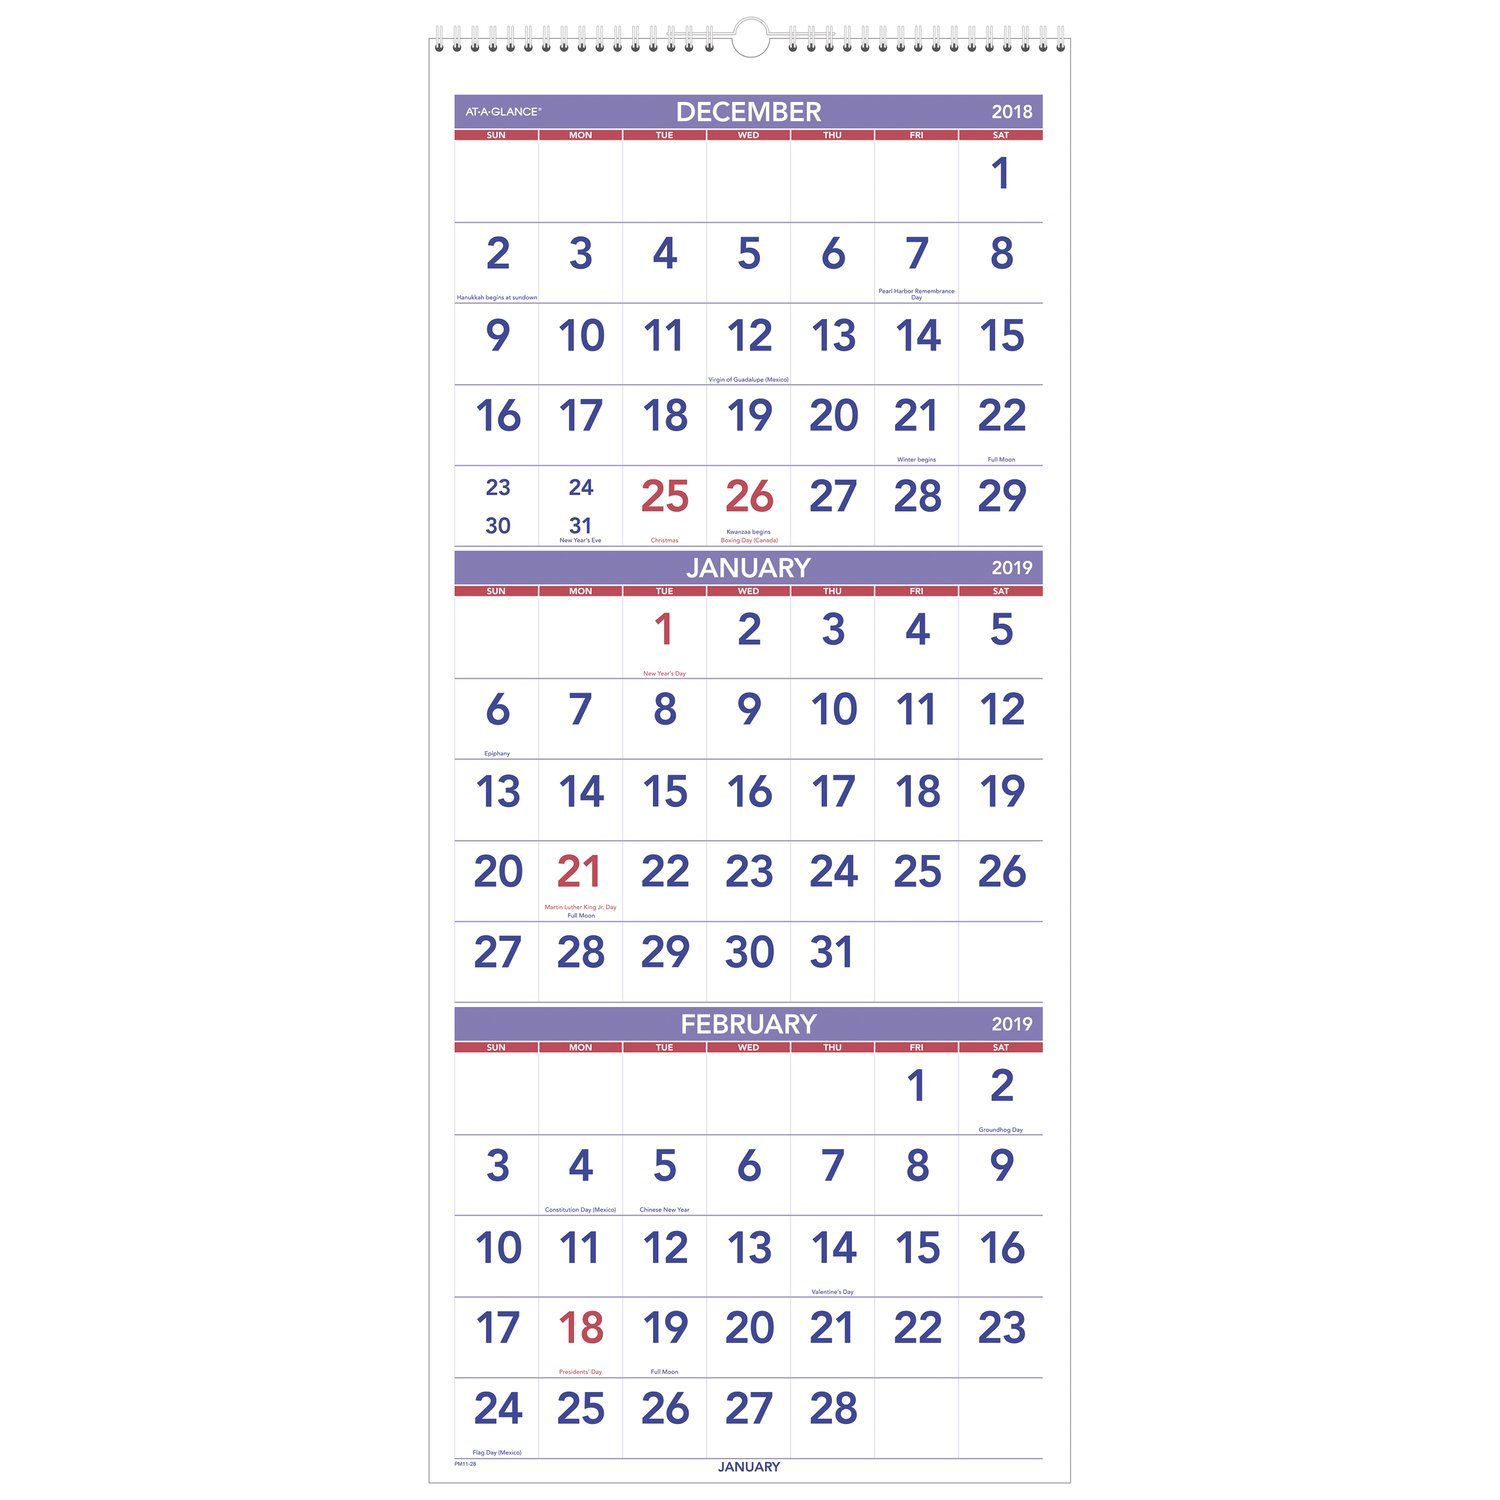 AT-A-GLANCE Wall Calendar, 2019, December 2018 - January 2020, 3-Month Display, 12'' x 27'', Wirebound, Vertical (PM1128)